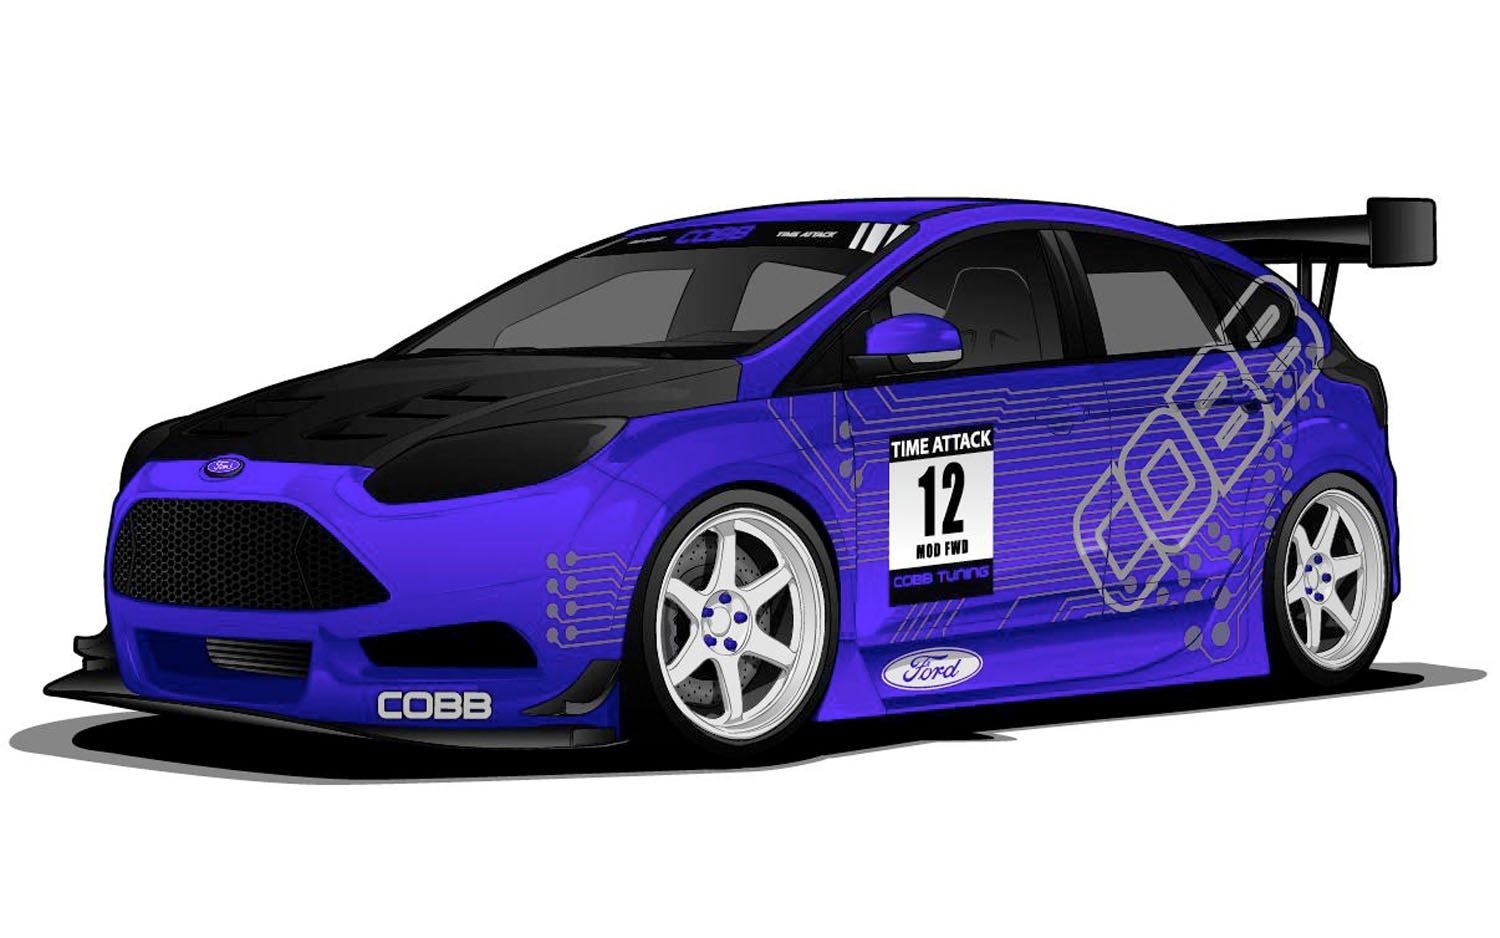 Ford Previews Focus, Fiesta Concepts Ahead of SEMA Show